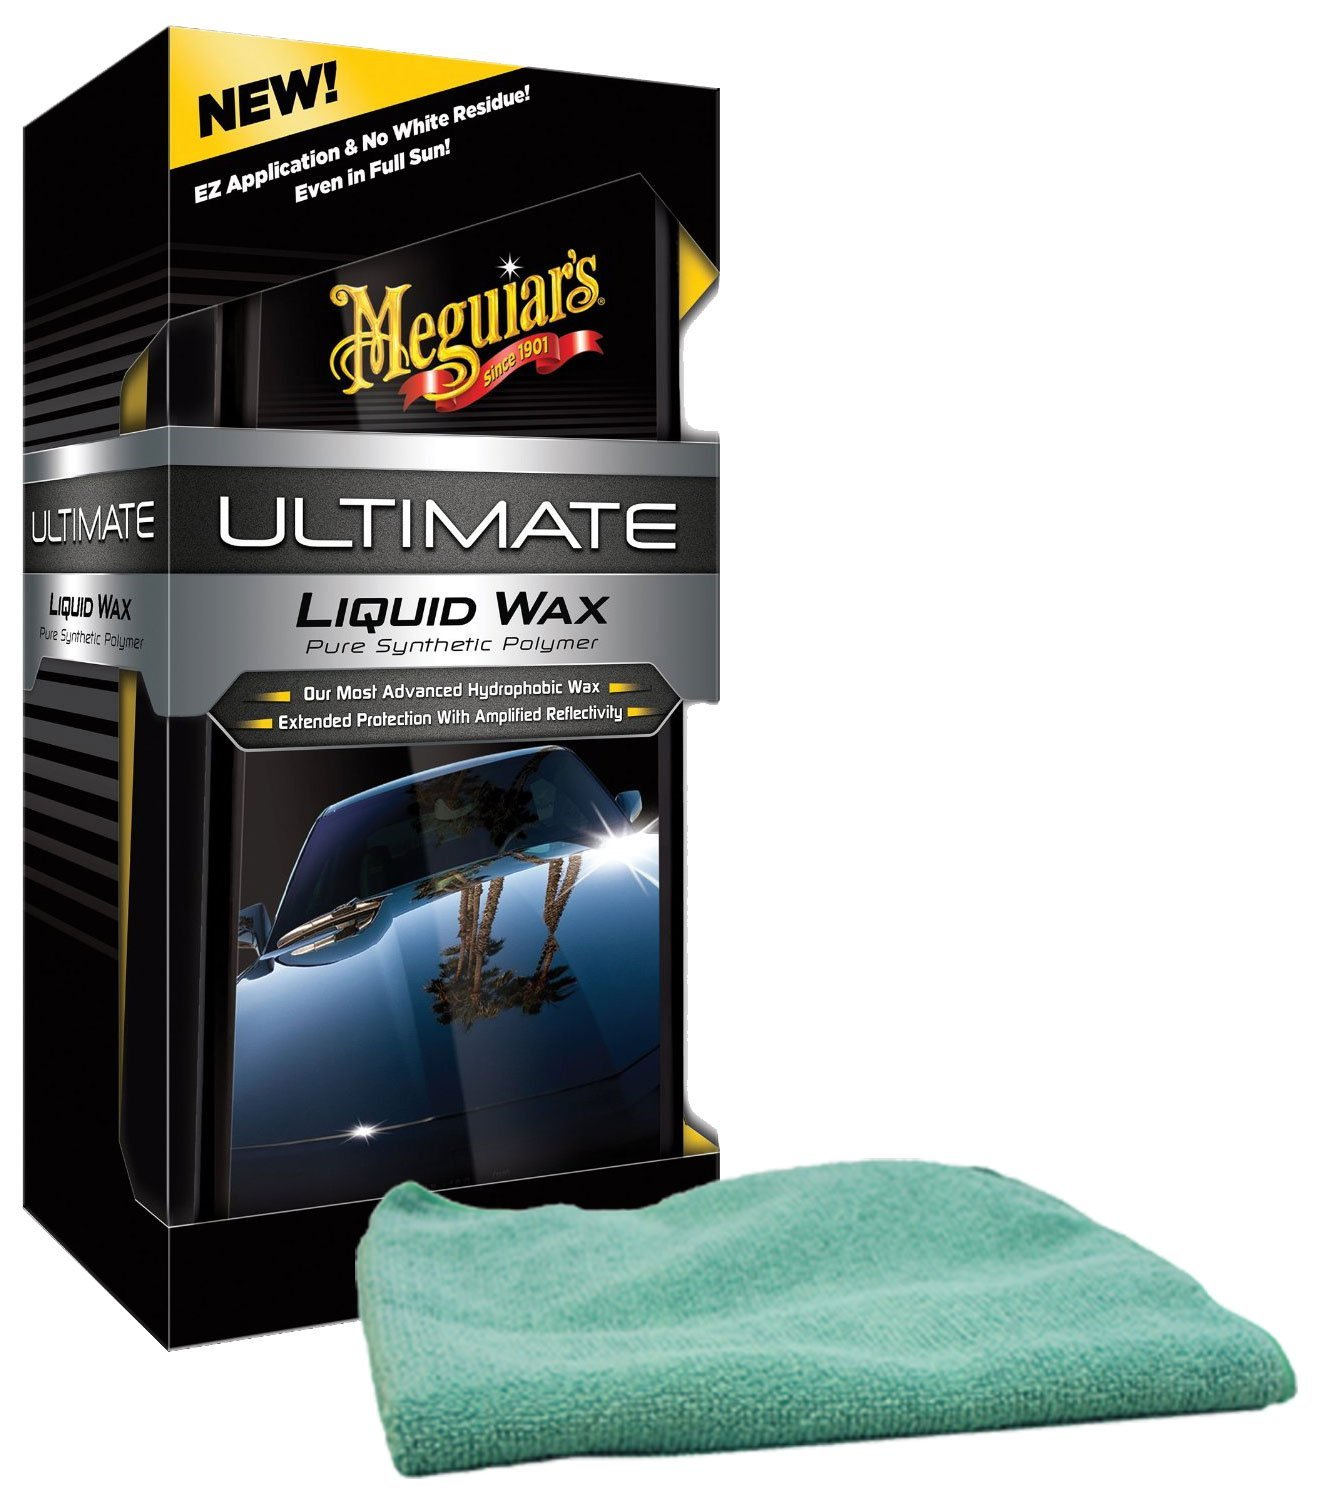 Image of Meguiars Ultimate Liquid Wax & Microfiber Cloth Kit